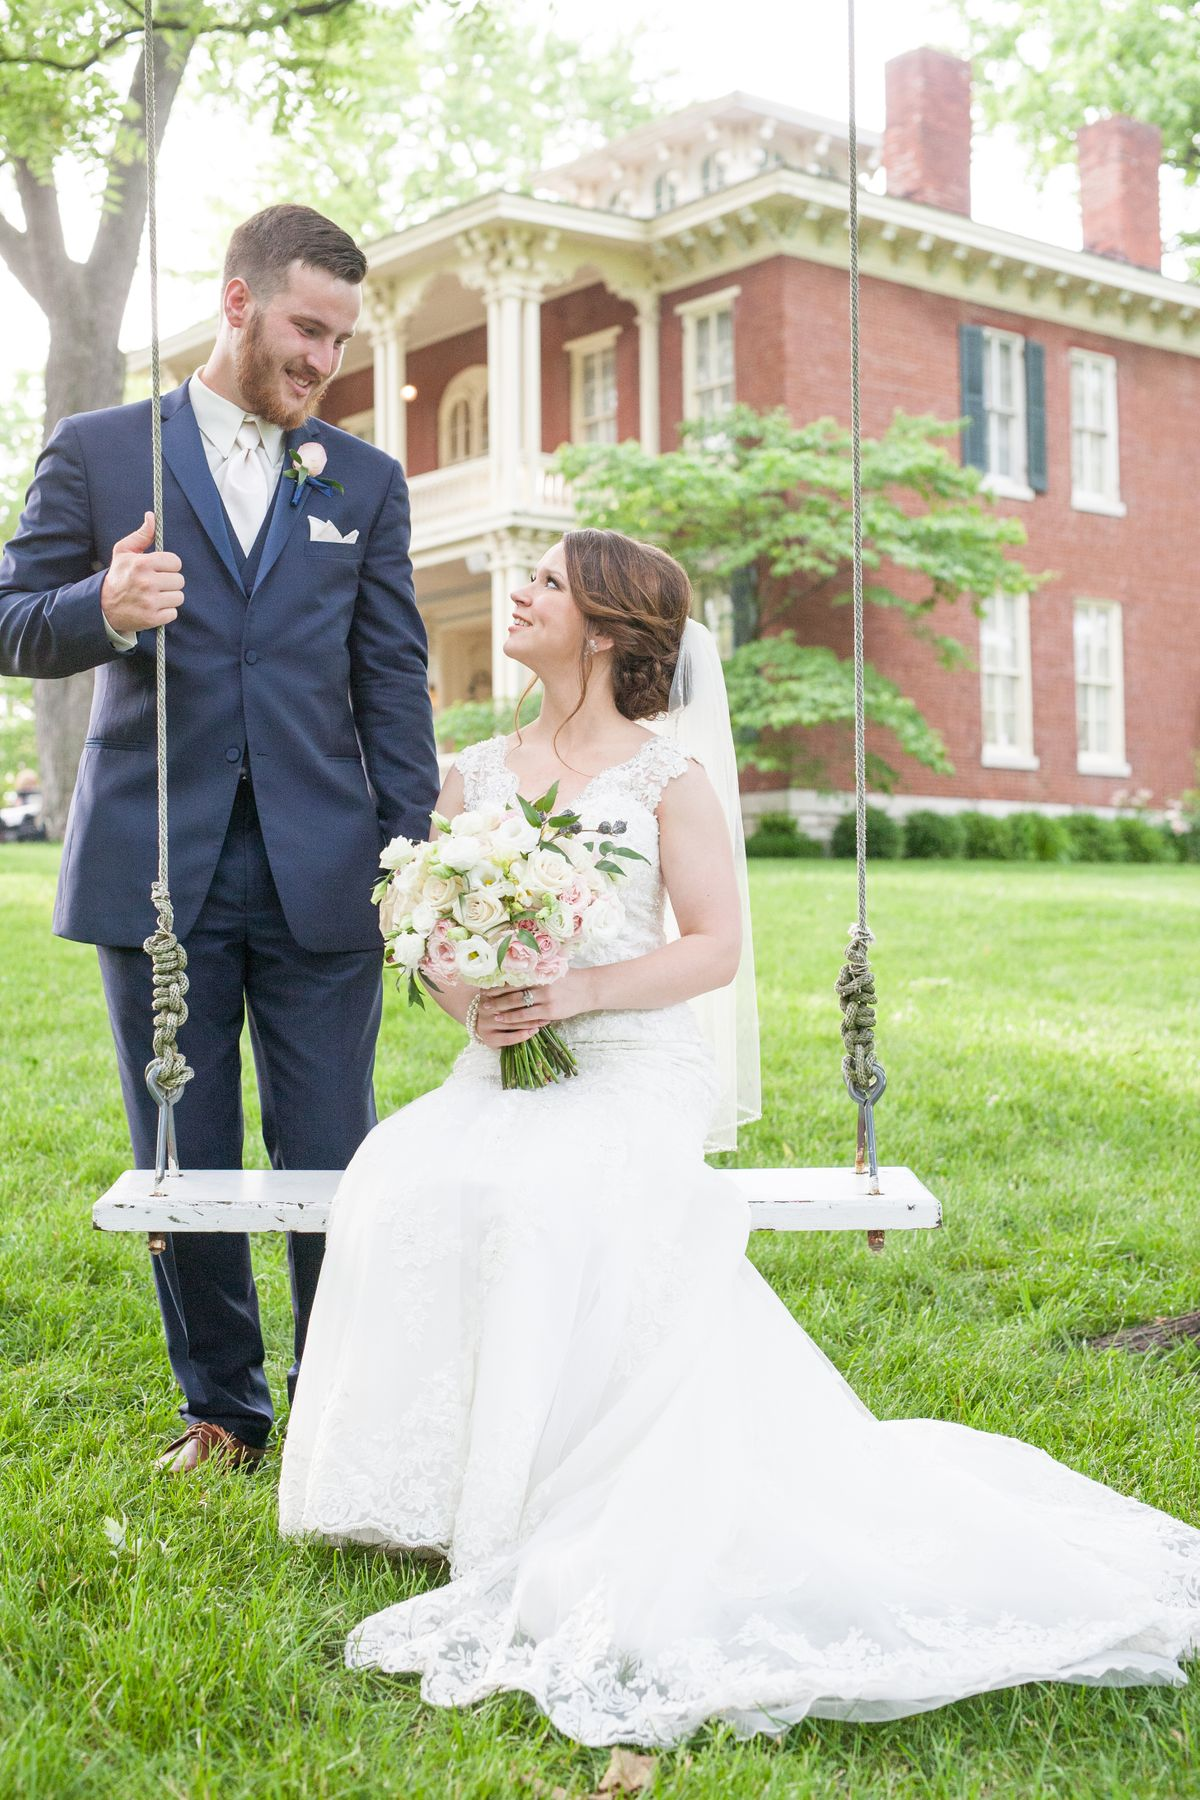 Dream Weddings at The Larimore a Venue in St. Louis.